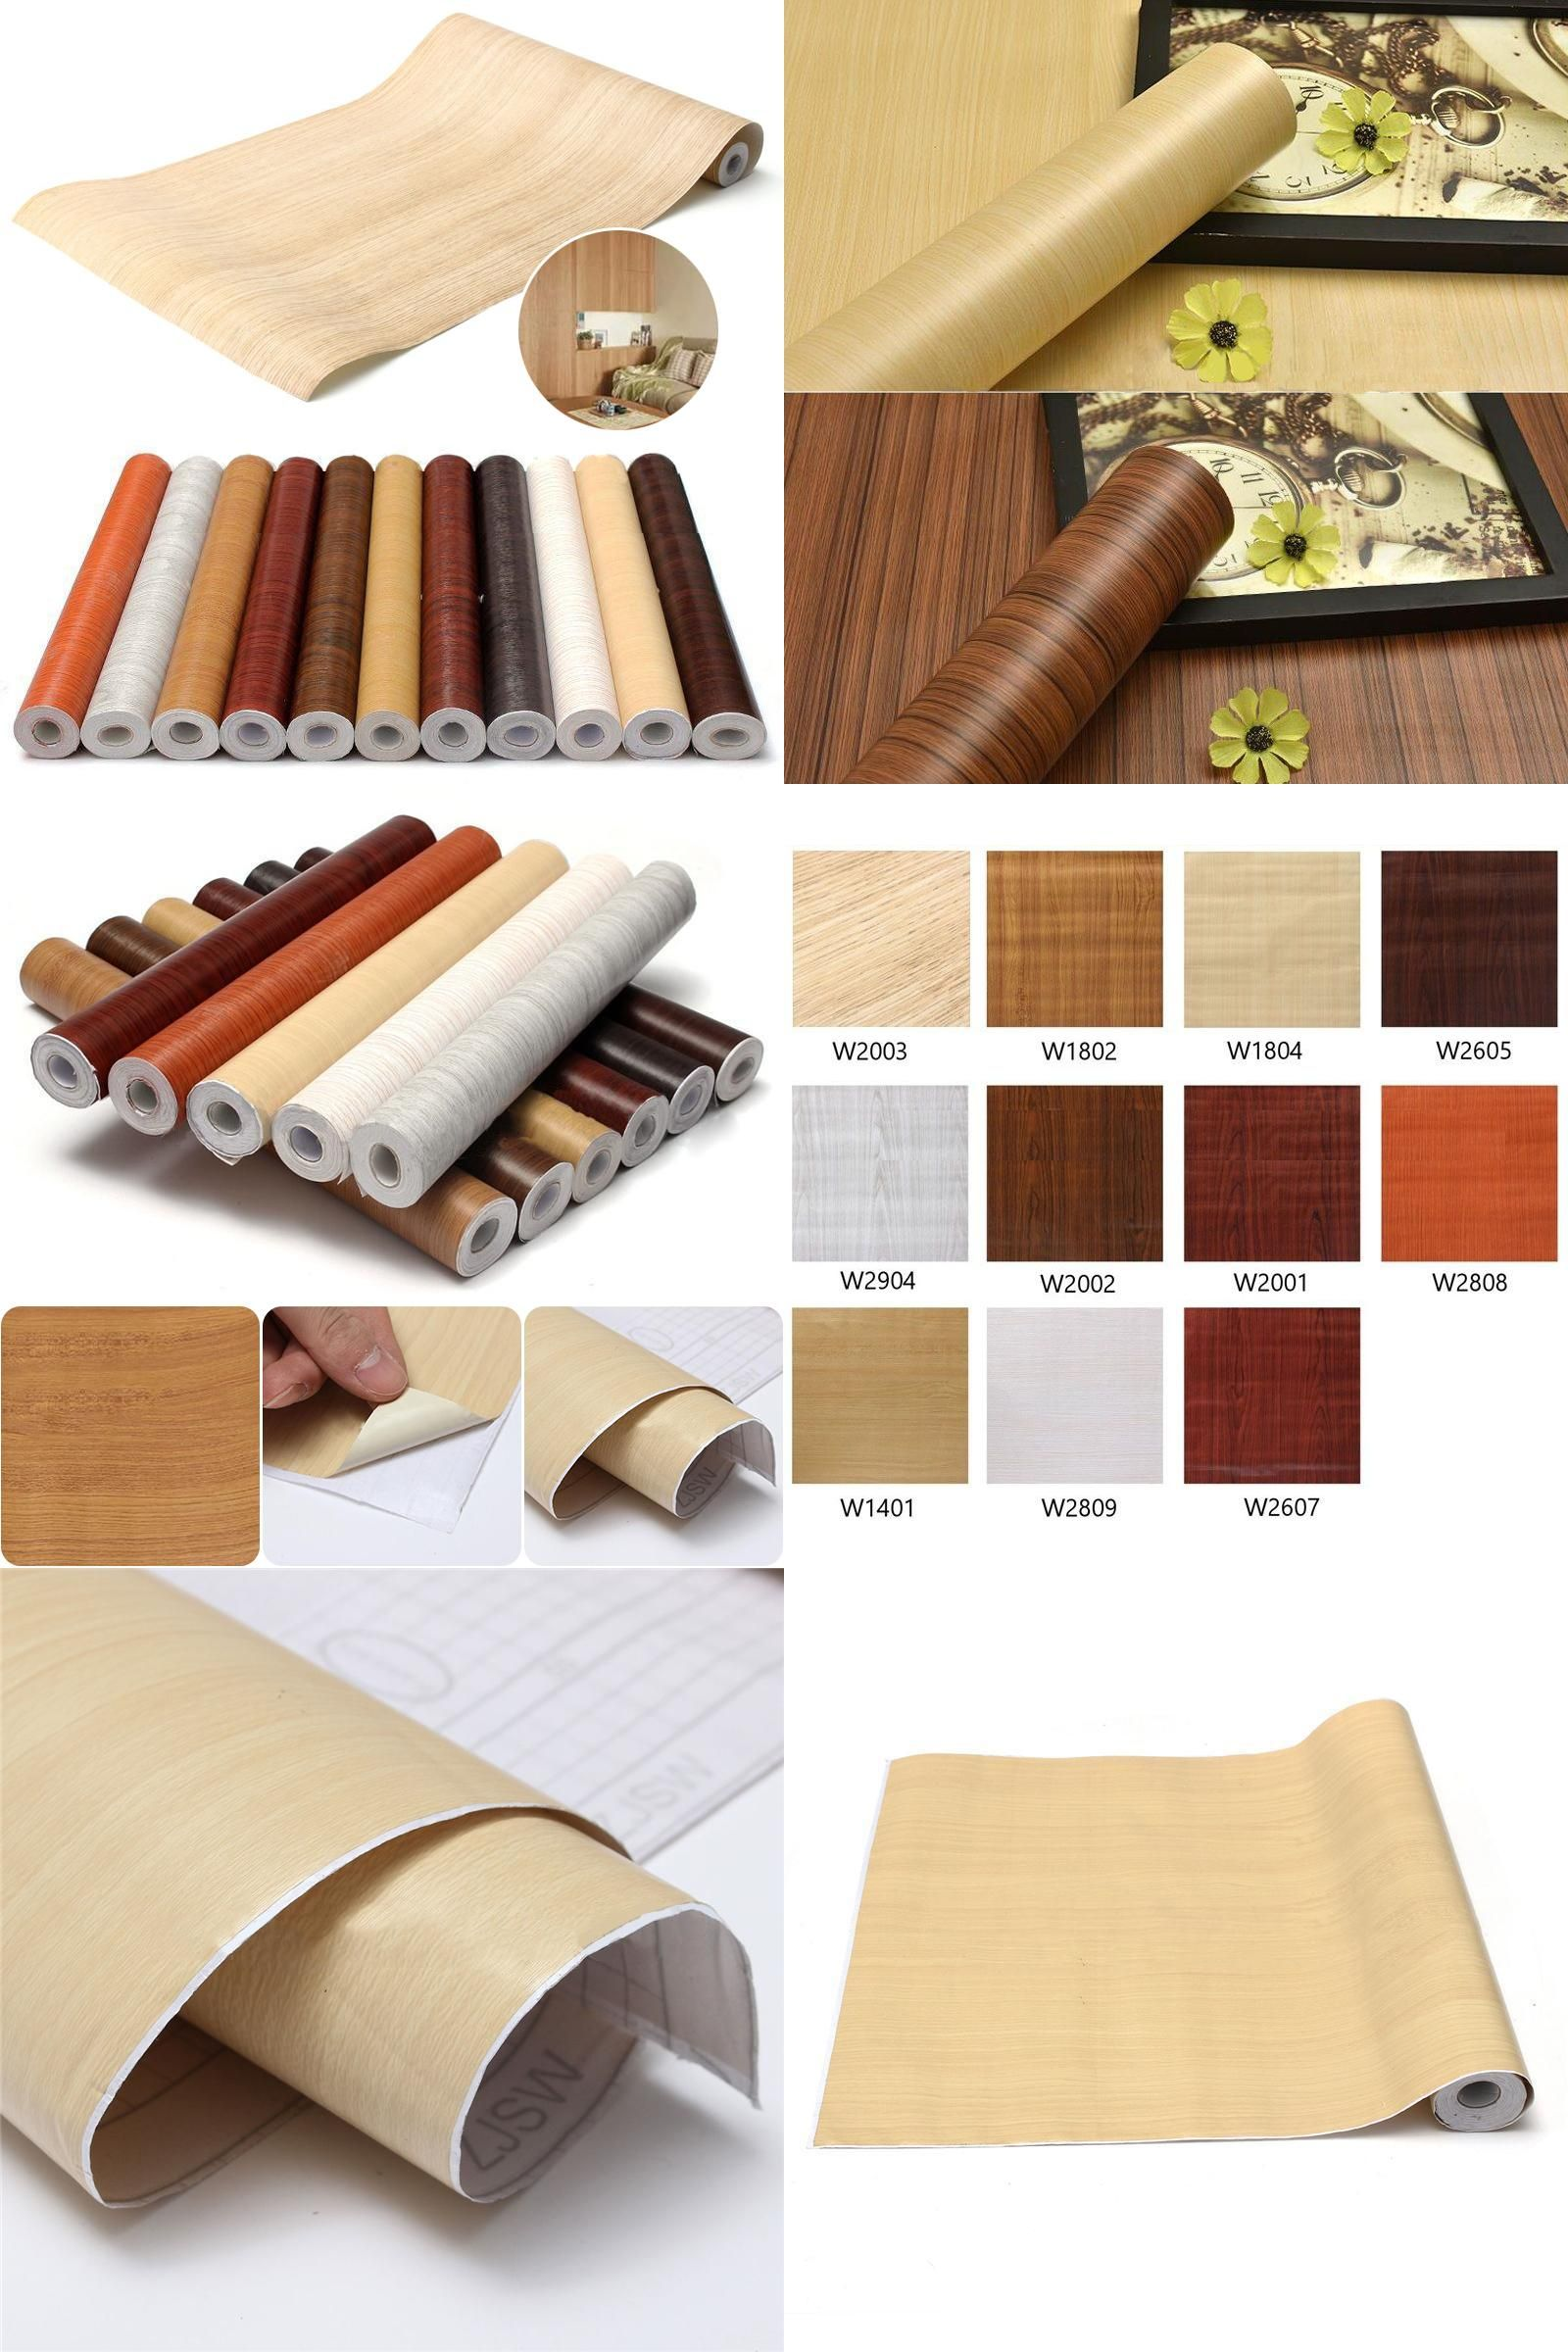 sticky paper for furniture. [Visit To Buy] Wood Grain DIY Decorative Film Self Adhesive Wall Paper Furniture Renovation Sticky For R